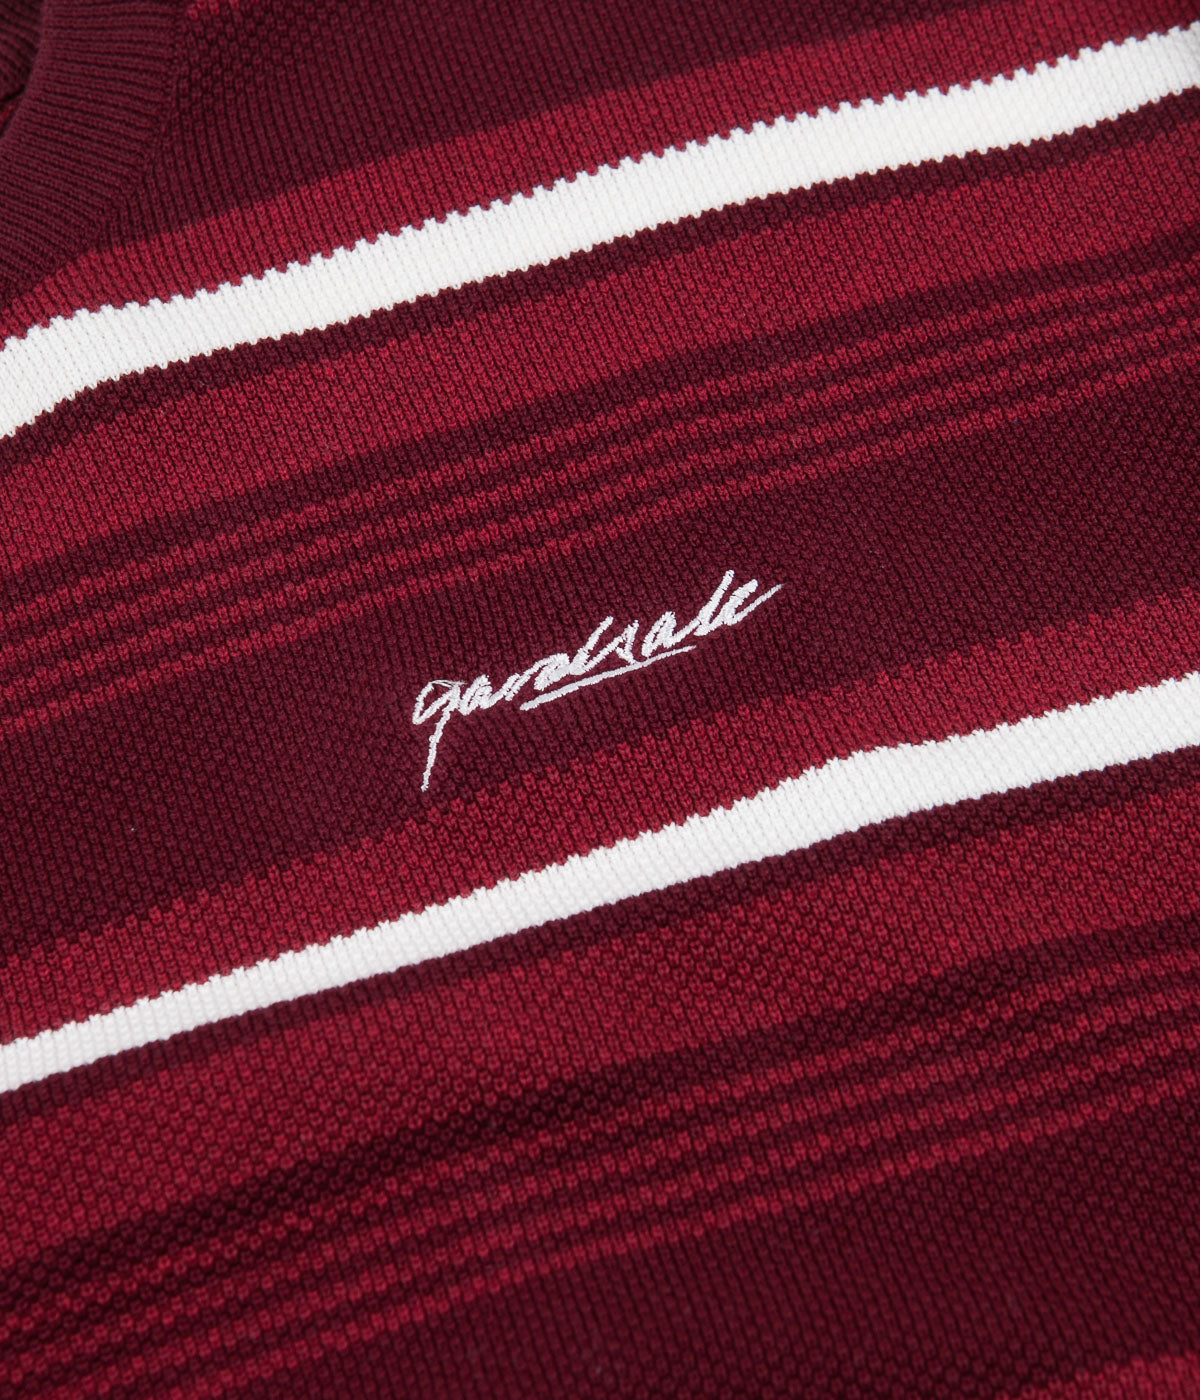 Yardsale Mirage Crewneck Sweatshirt - Burgundy